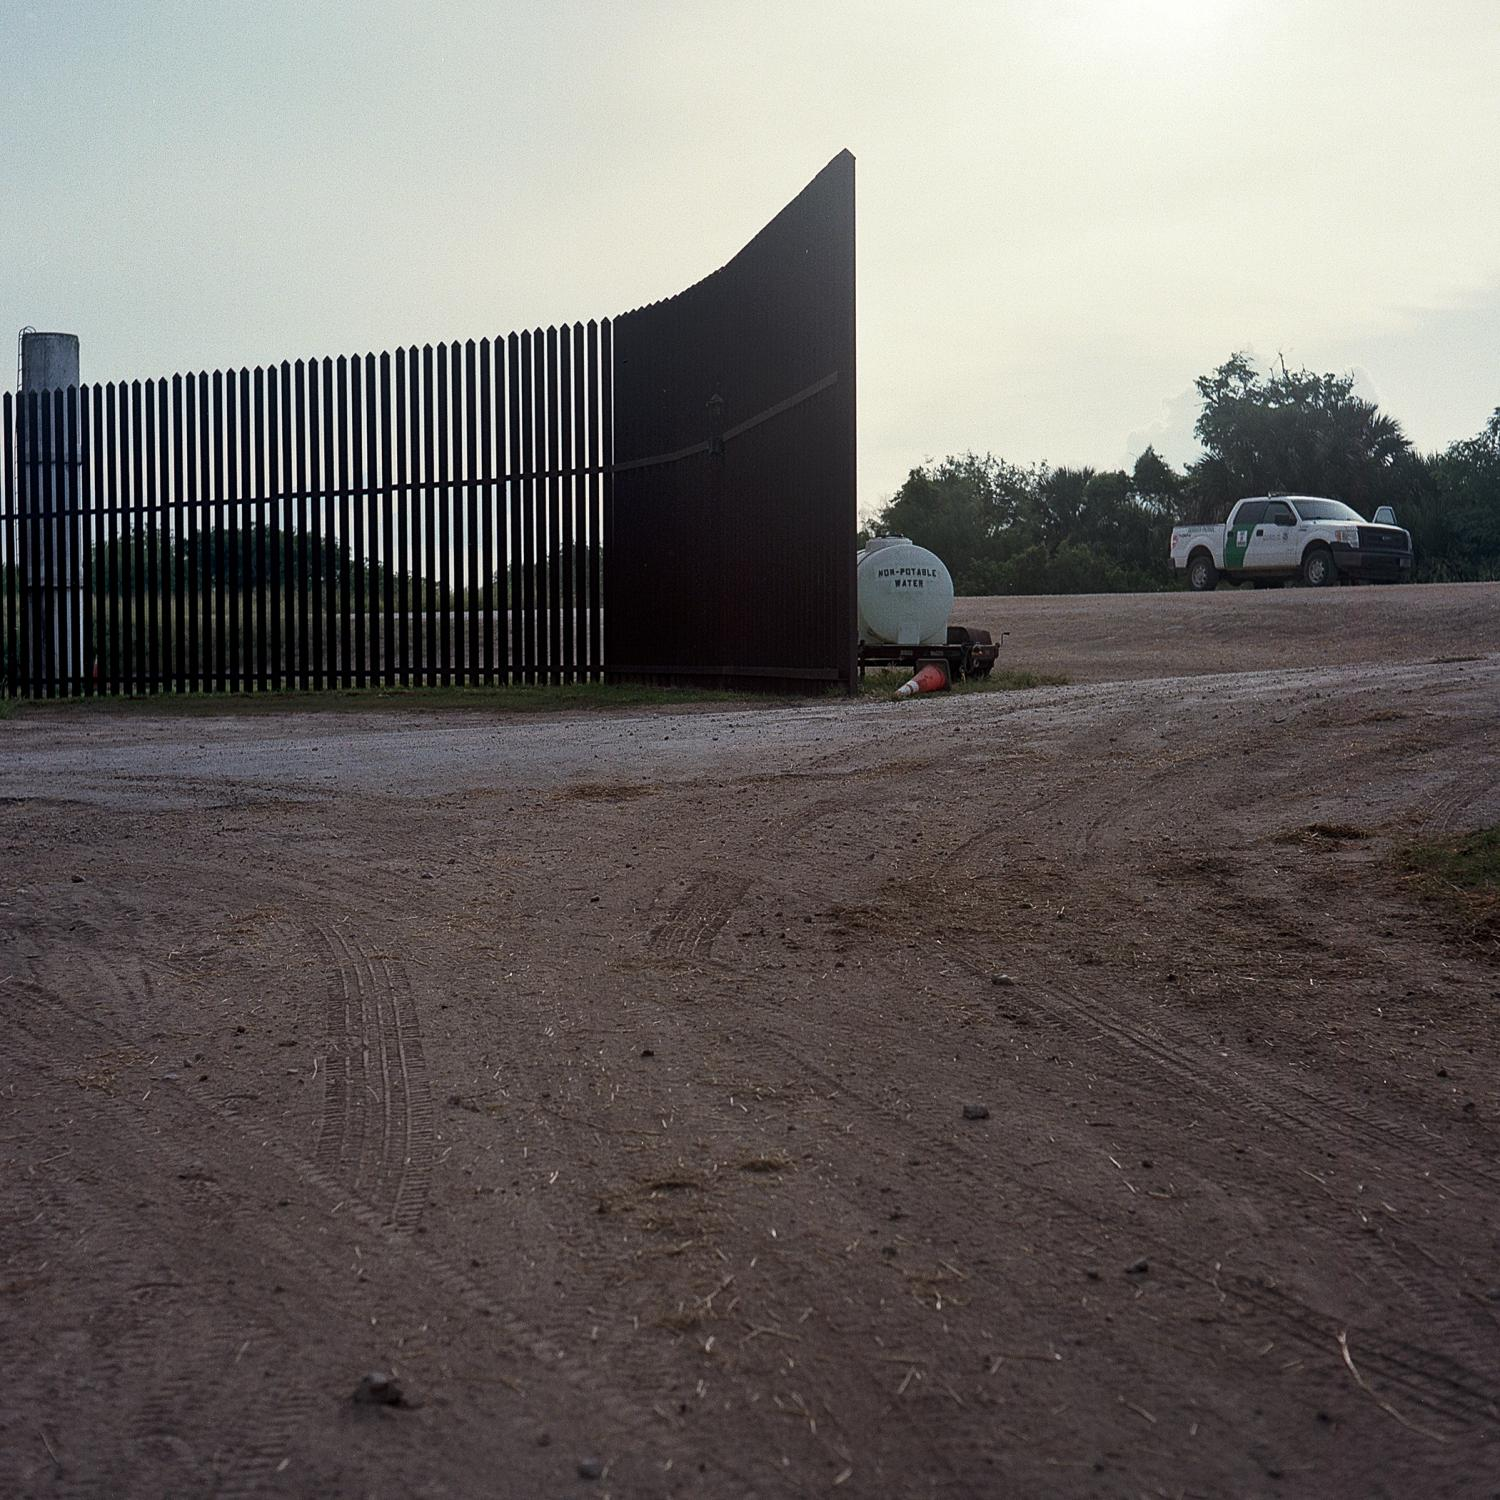 Brownsville, TX - OCTOBER 16, 2020: This part of the U.S.-Mexico border fence is located less than a mile away from the Rio Grande. At a distance, a Border Patrol truck.